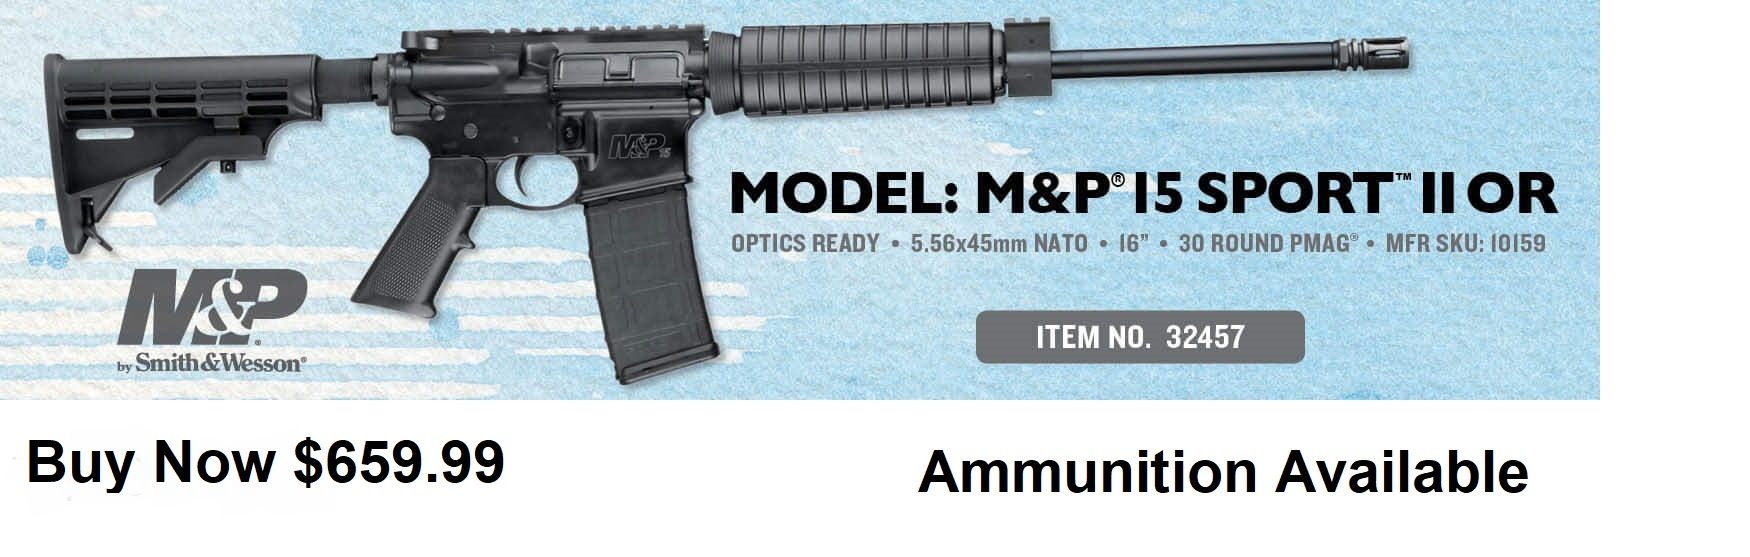 https://www.argunsammo.com/products/rifles-smith-wesson-10159-022188866421-4106